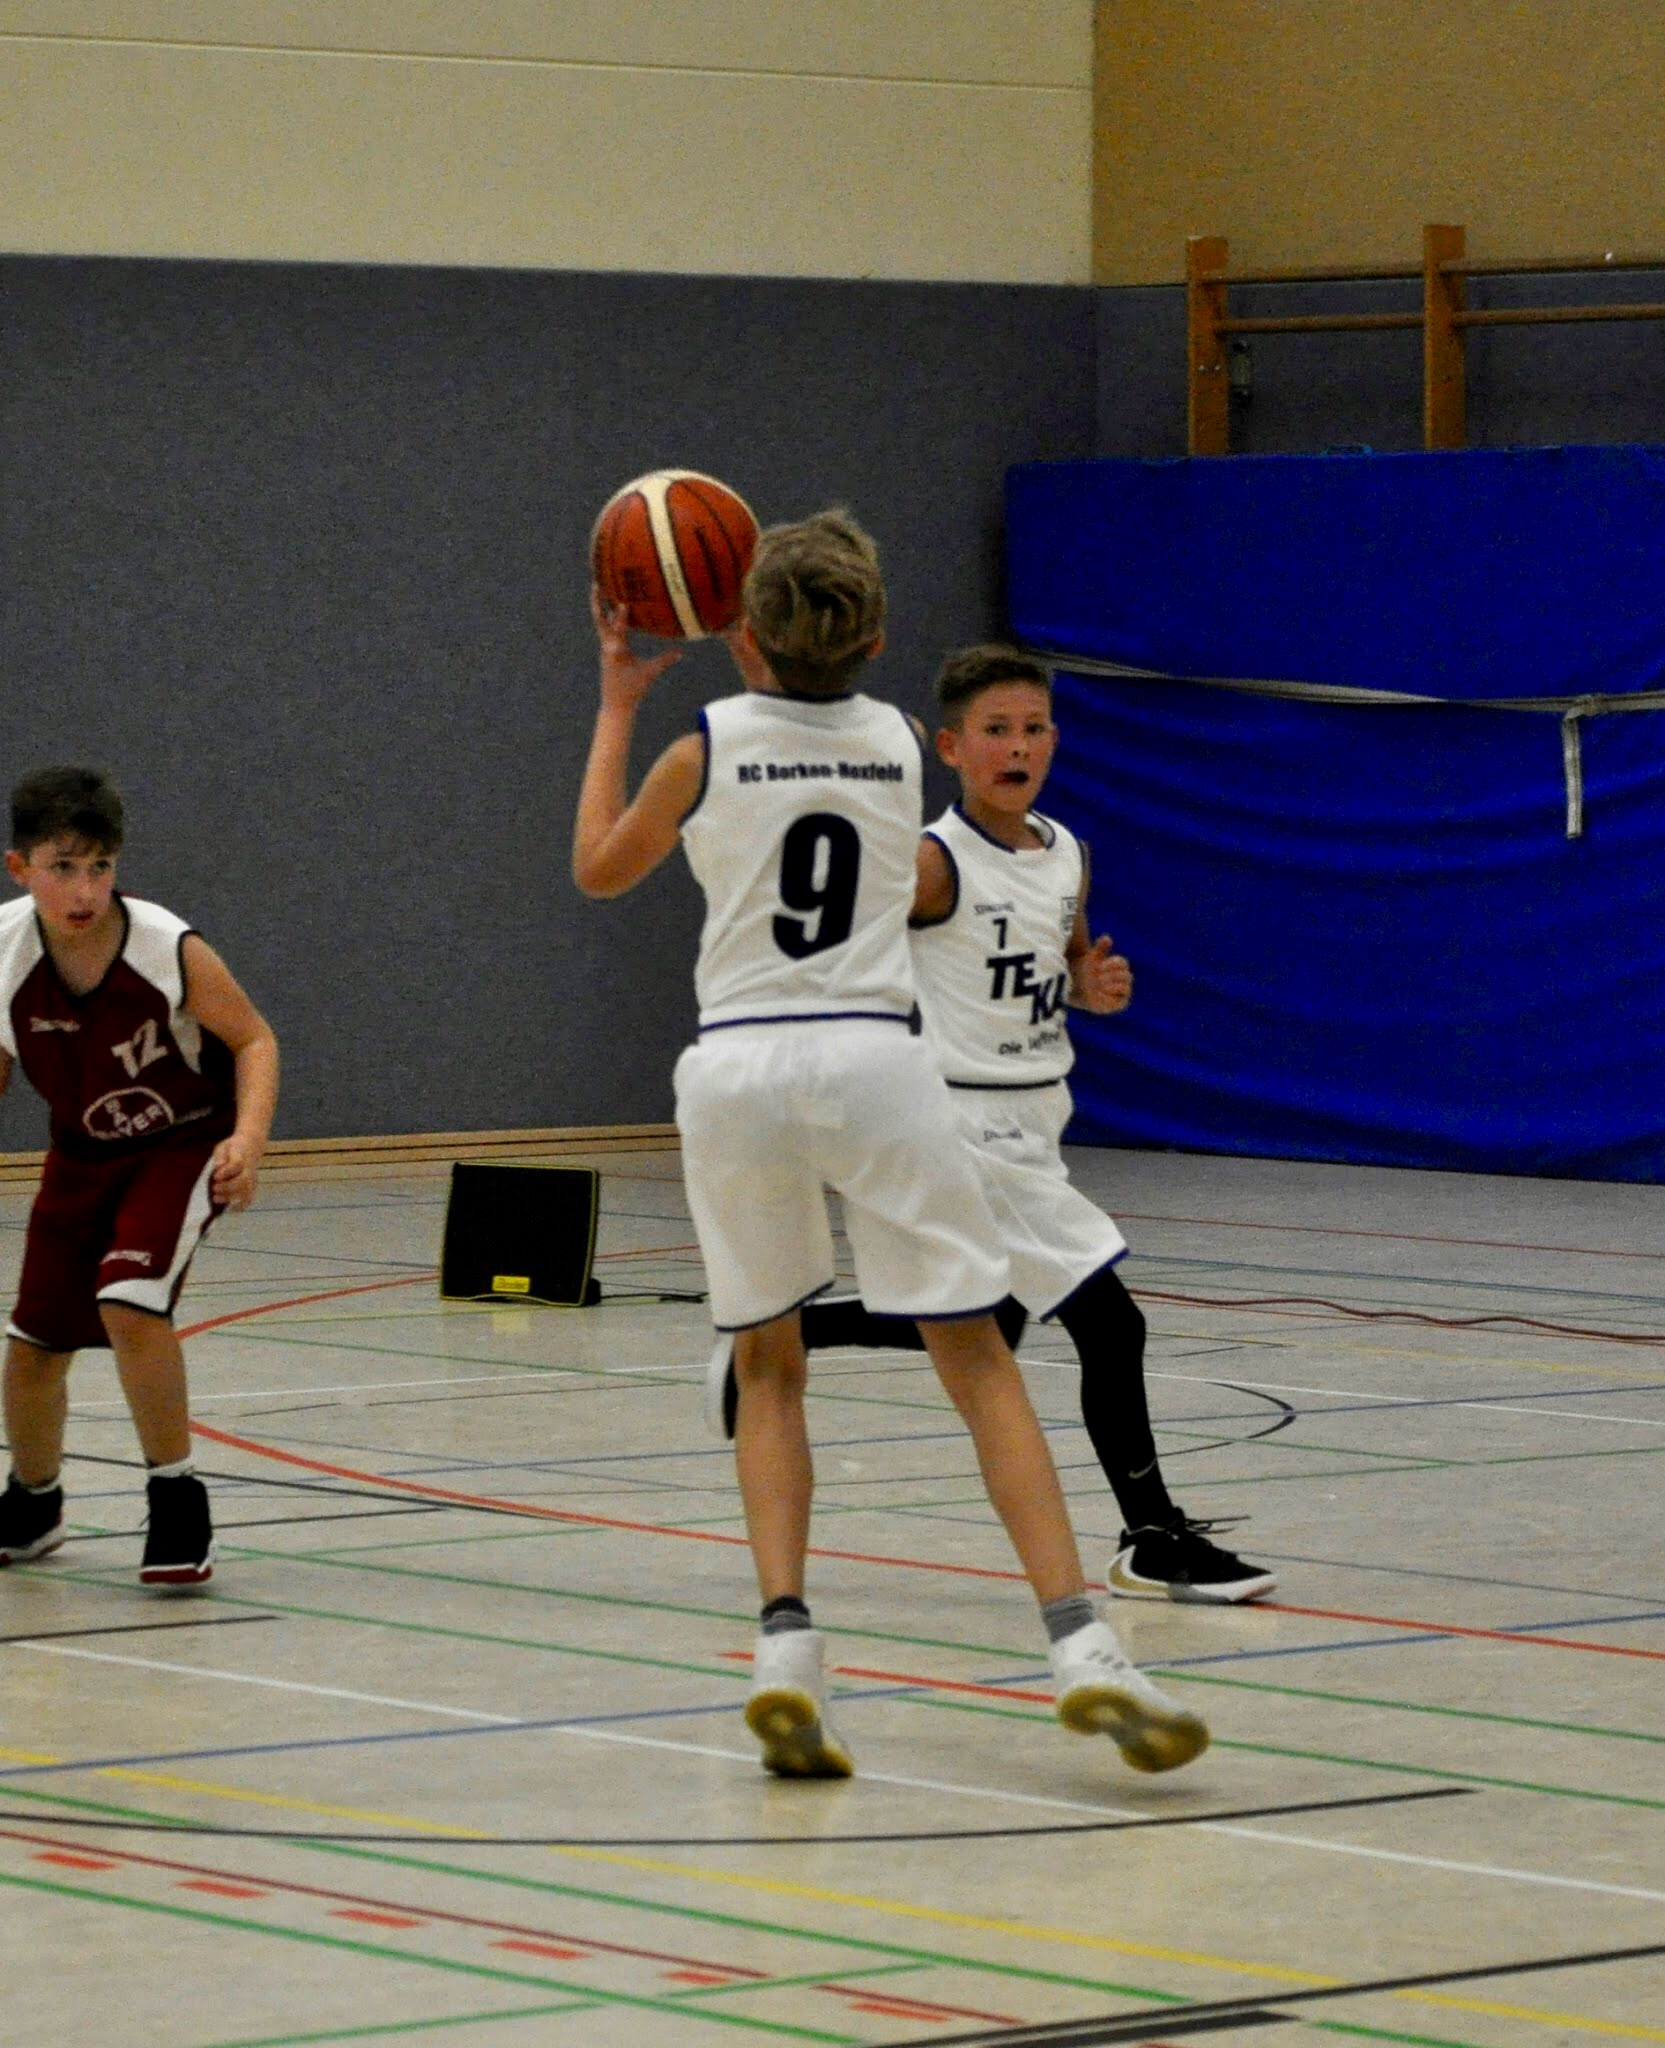 U12 vs Osterrath